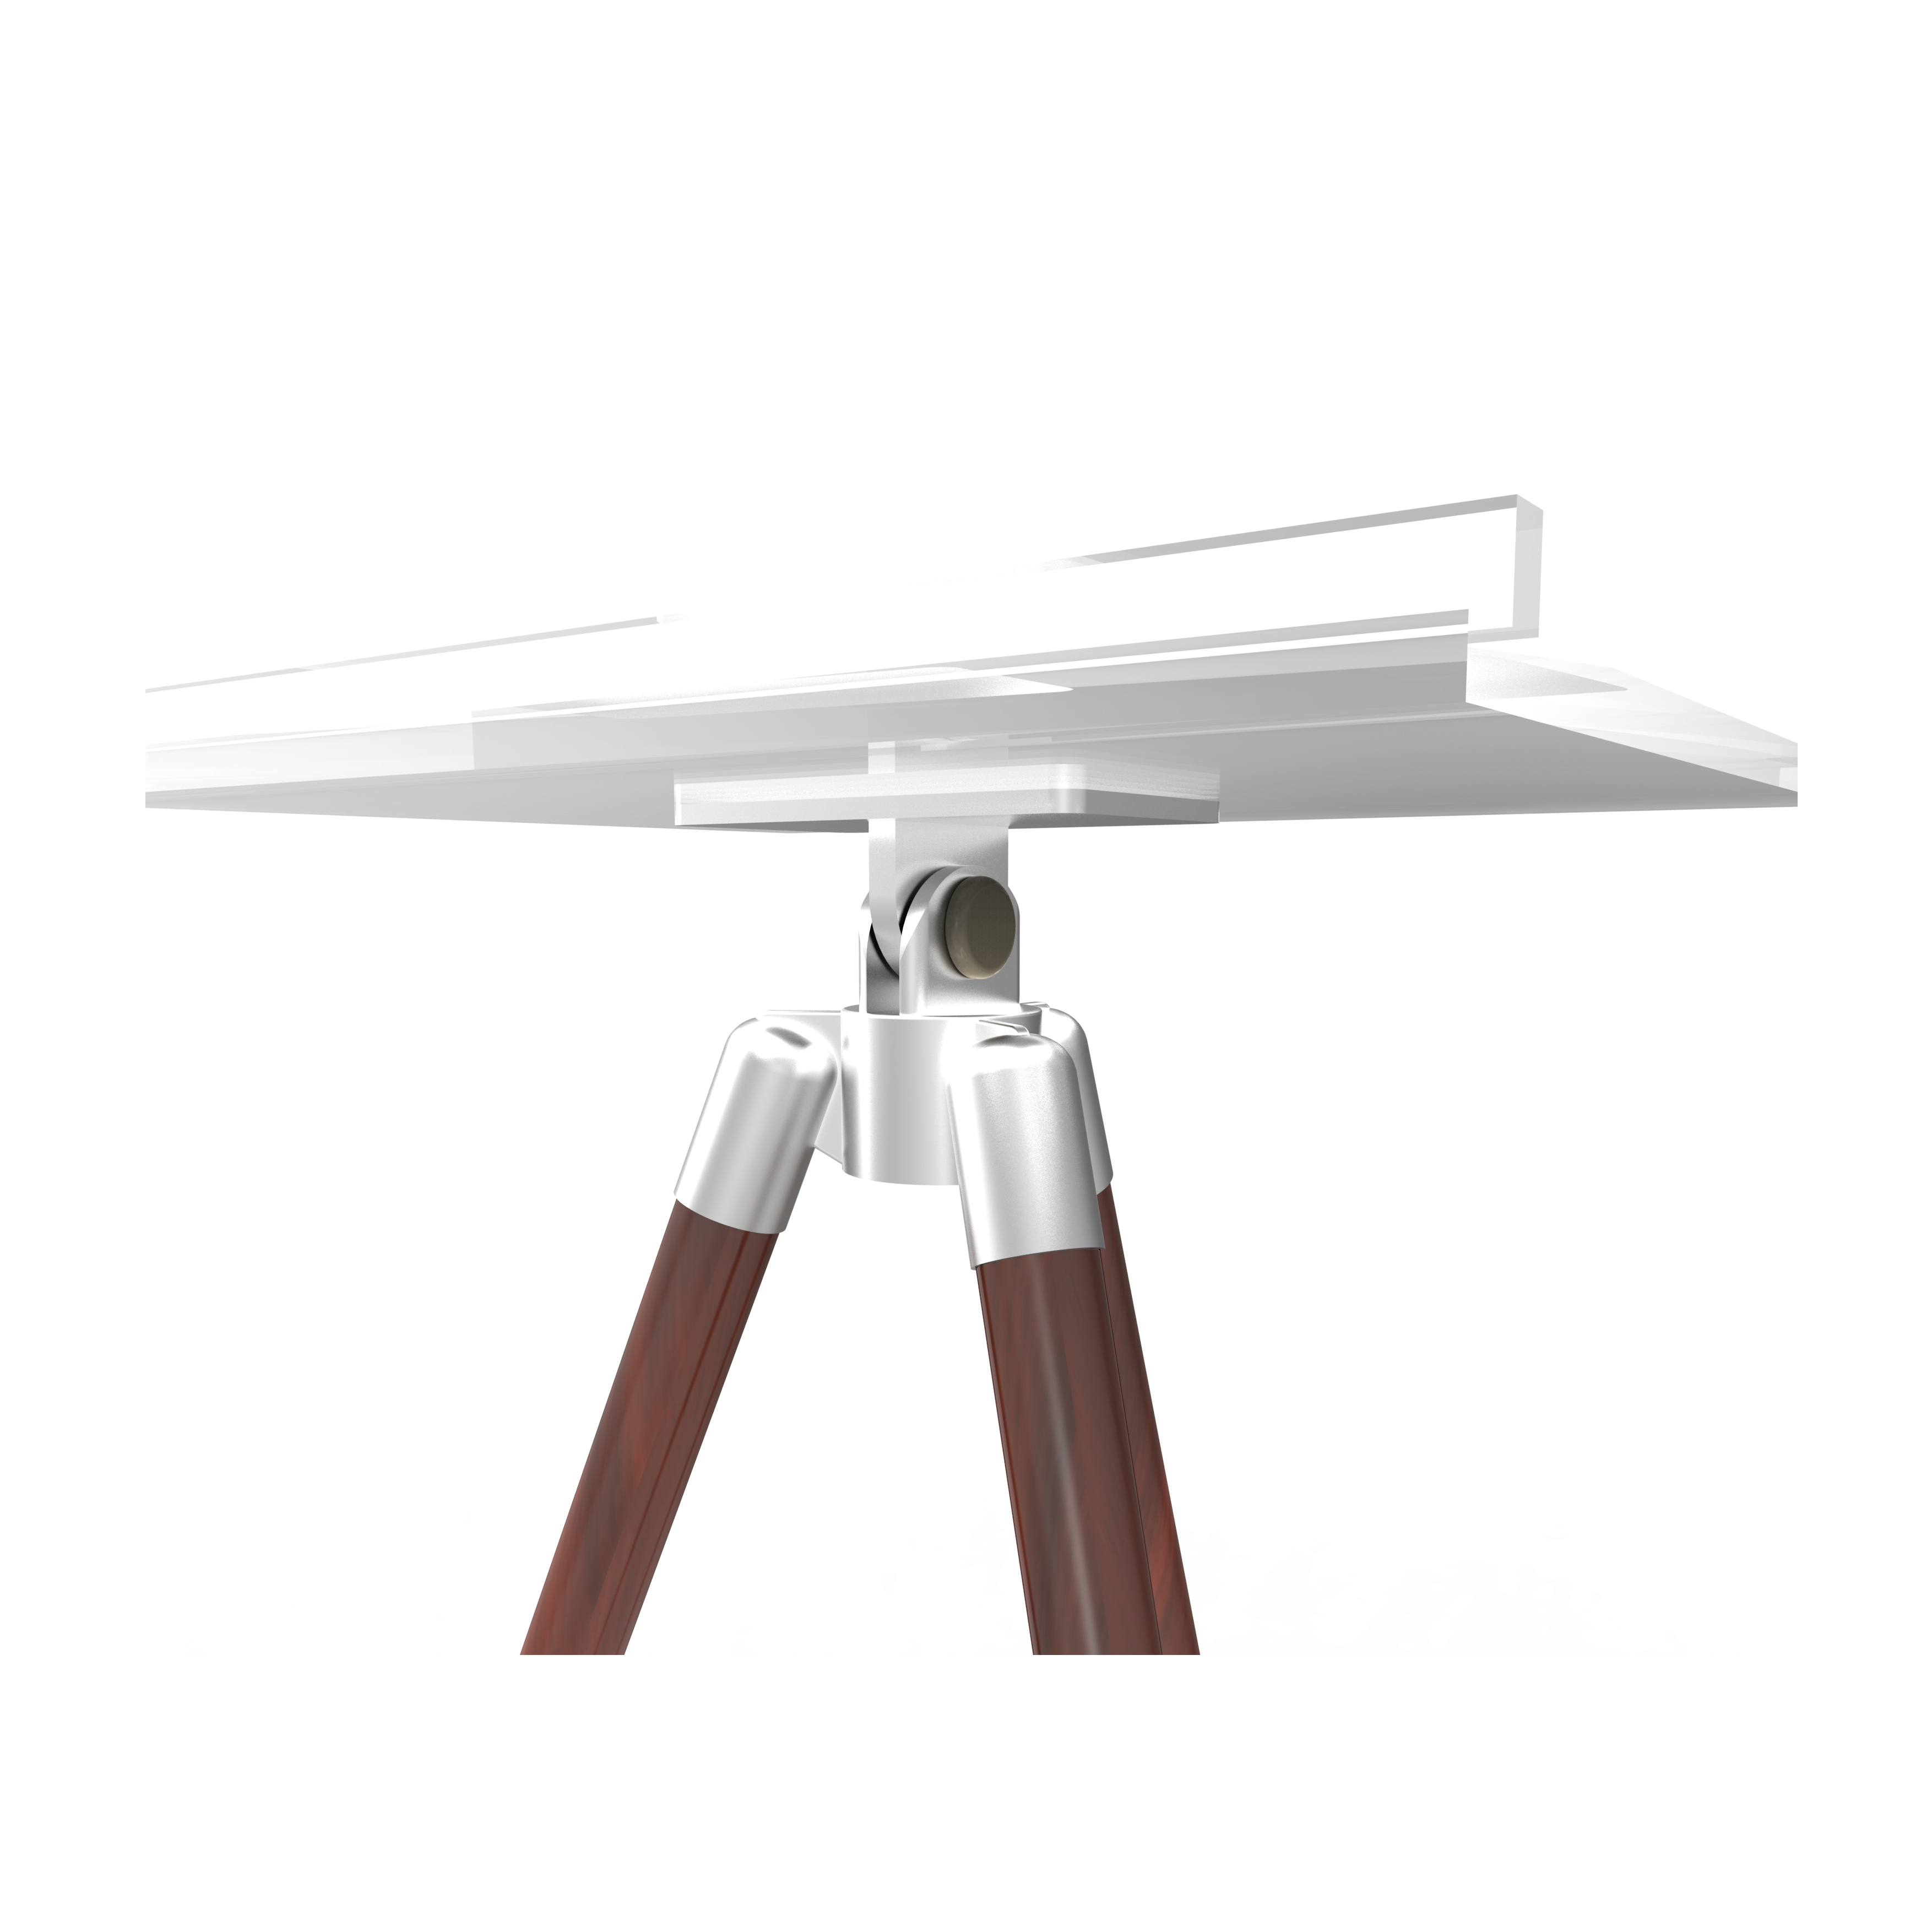 China Tripod Acrylic Table Board Book Holder Manufacturers